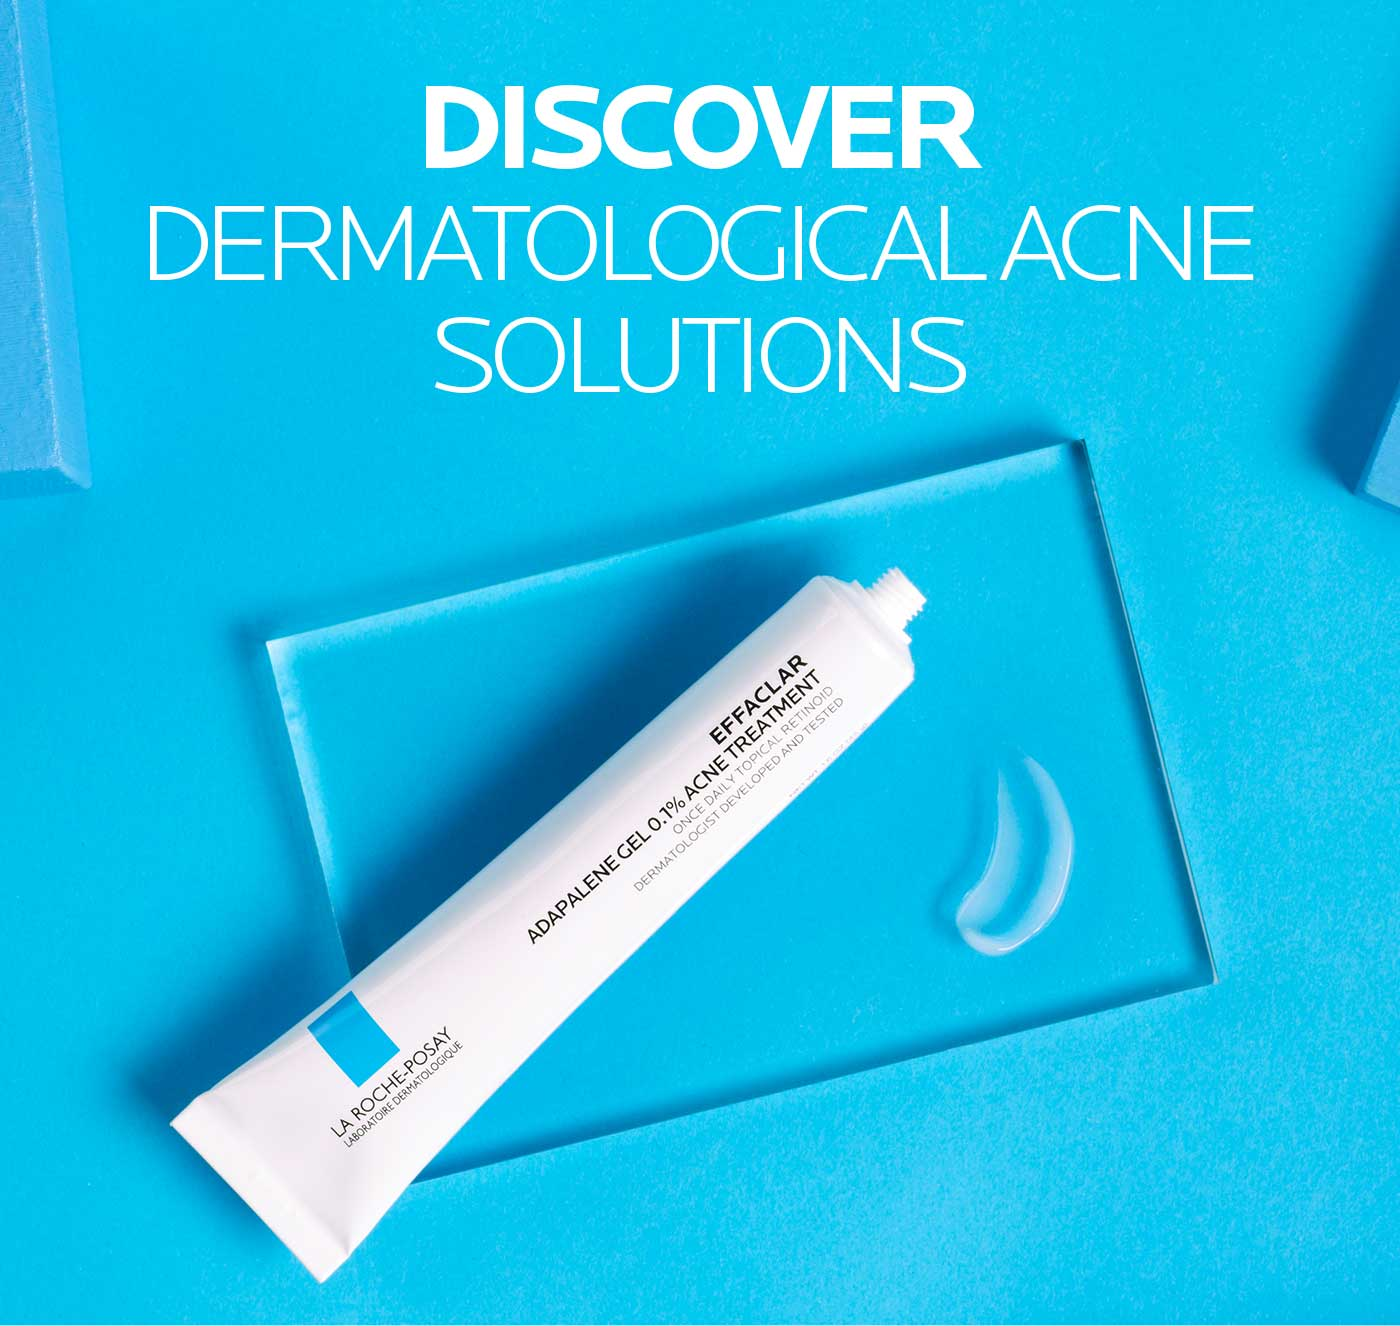 La Roche Posay Target Acne In Two Ways Milled